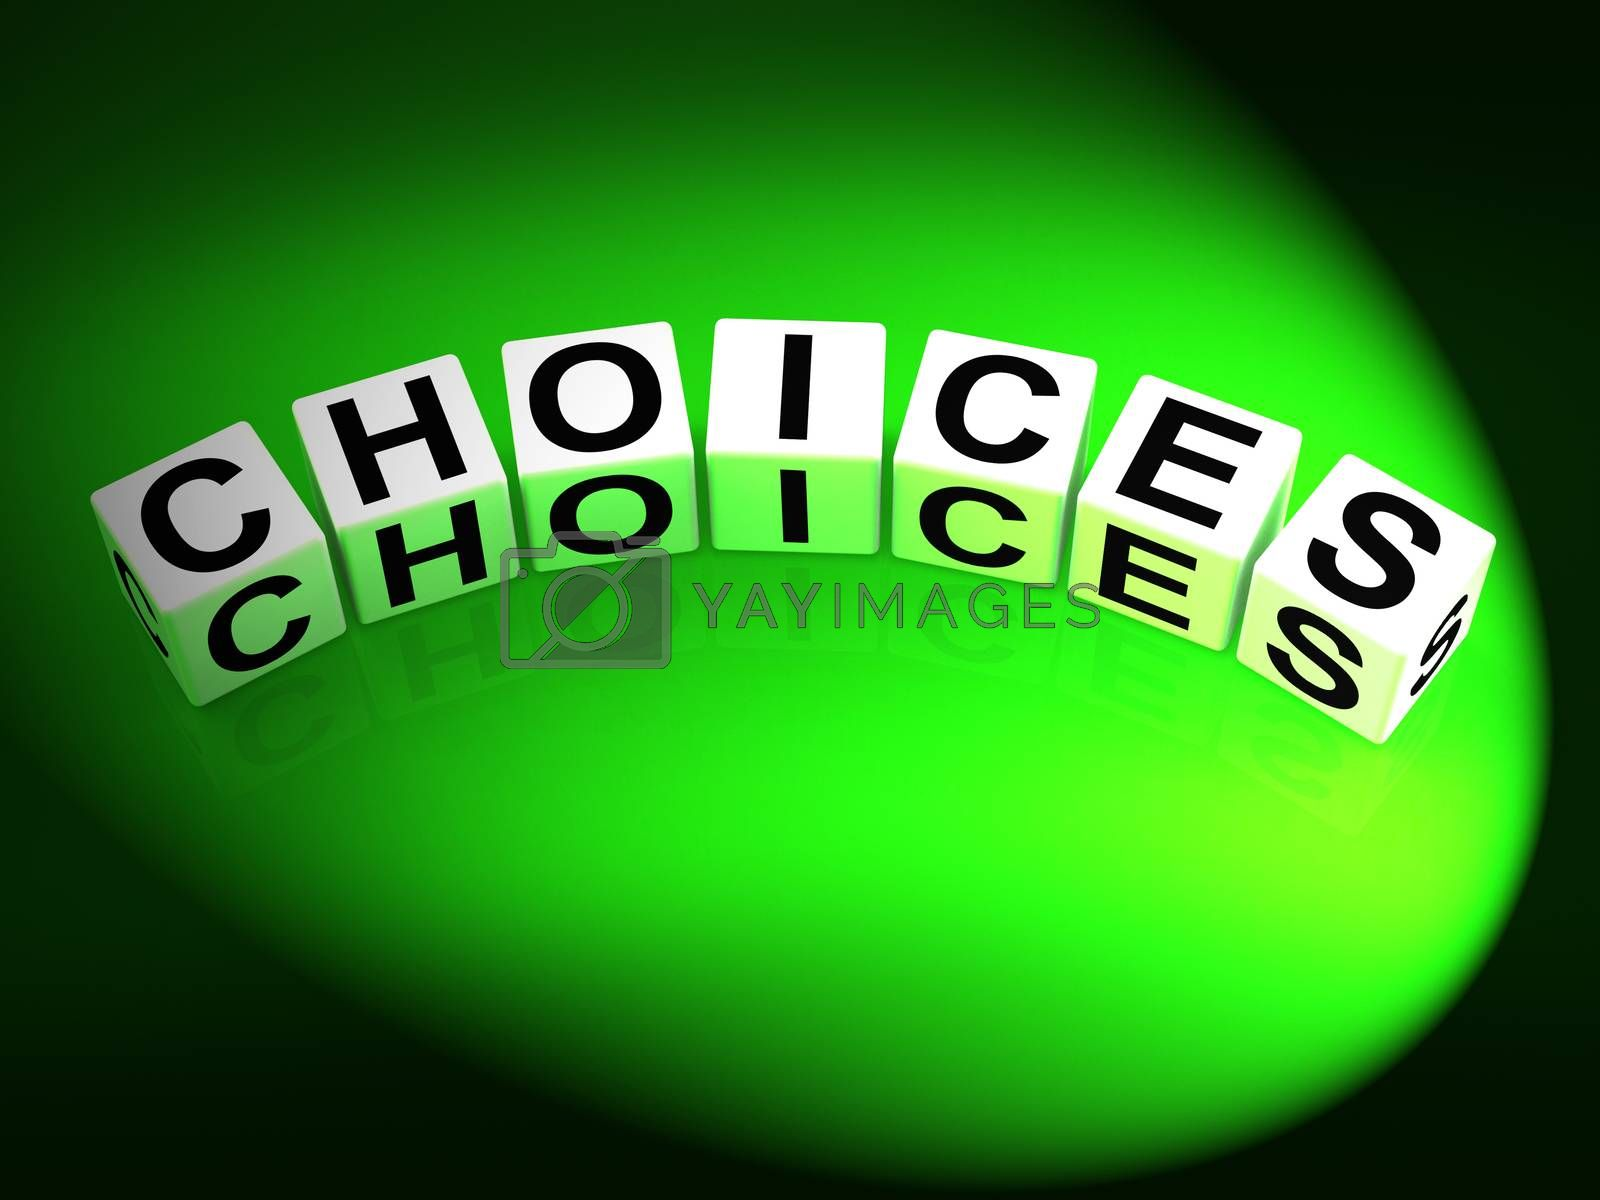 Choices Dice Show Uncertainty Alternatives and Opportunities by stuartmiles